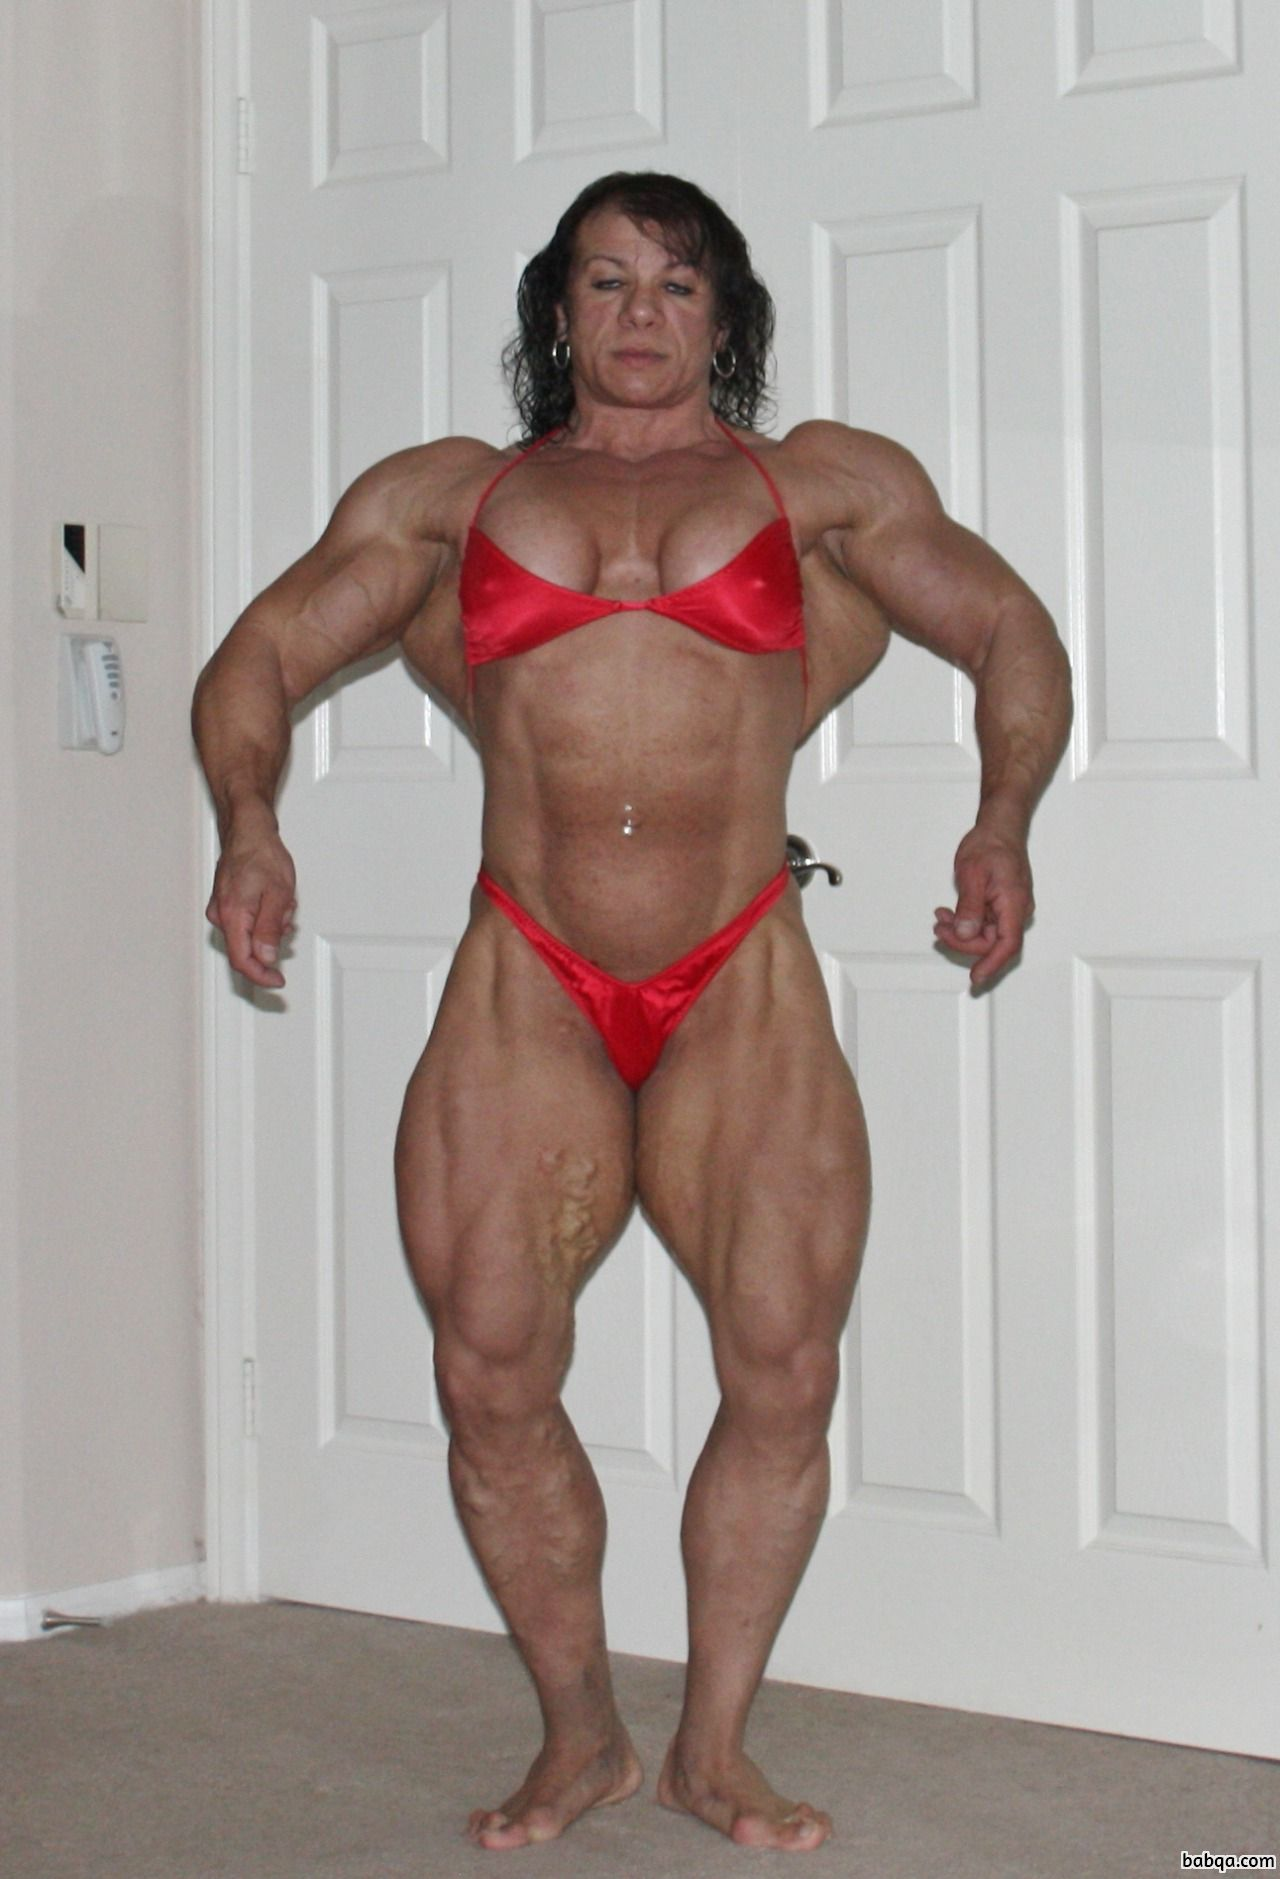 spicy lady with muscular body and muscle legs post from instagram